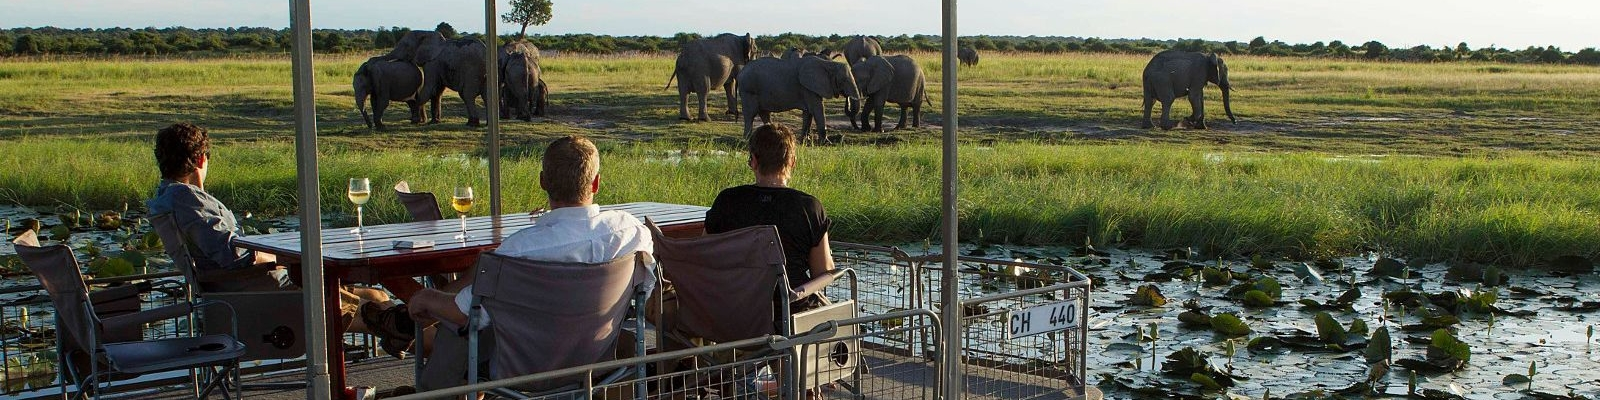 When-to-visit-botswana